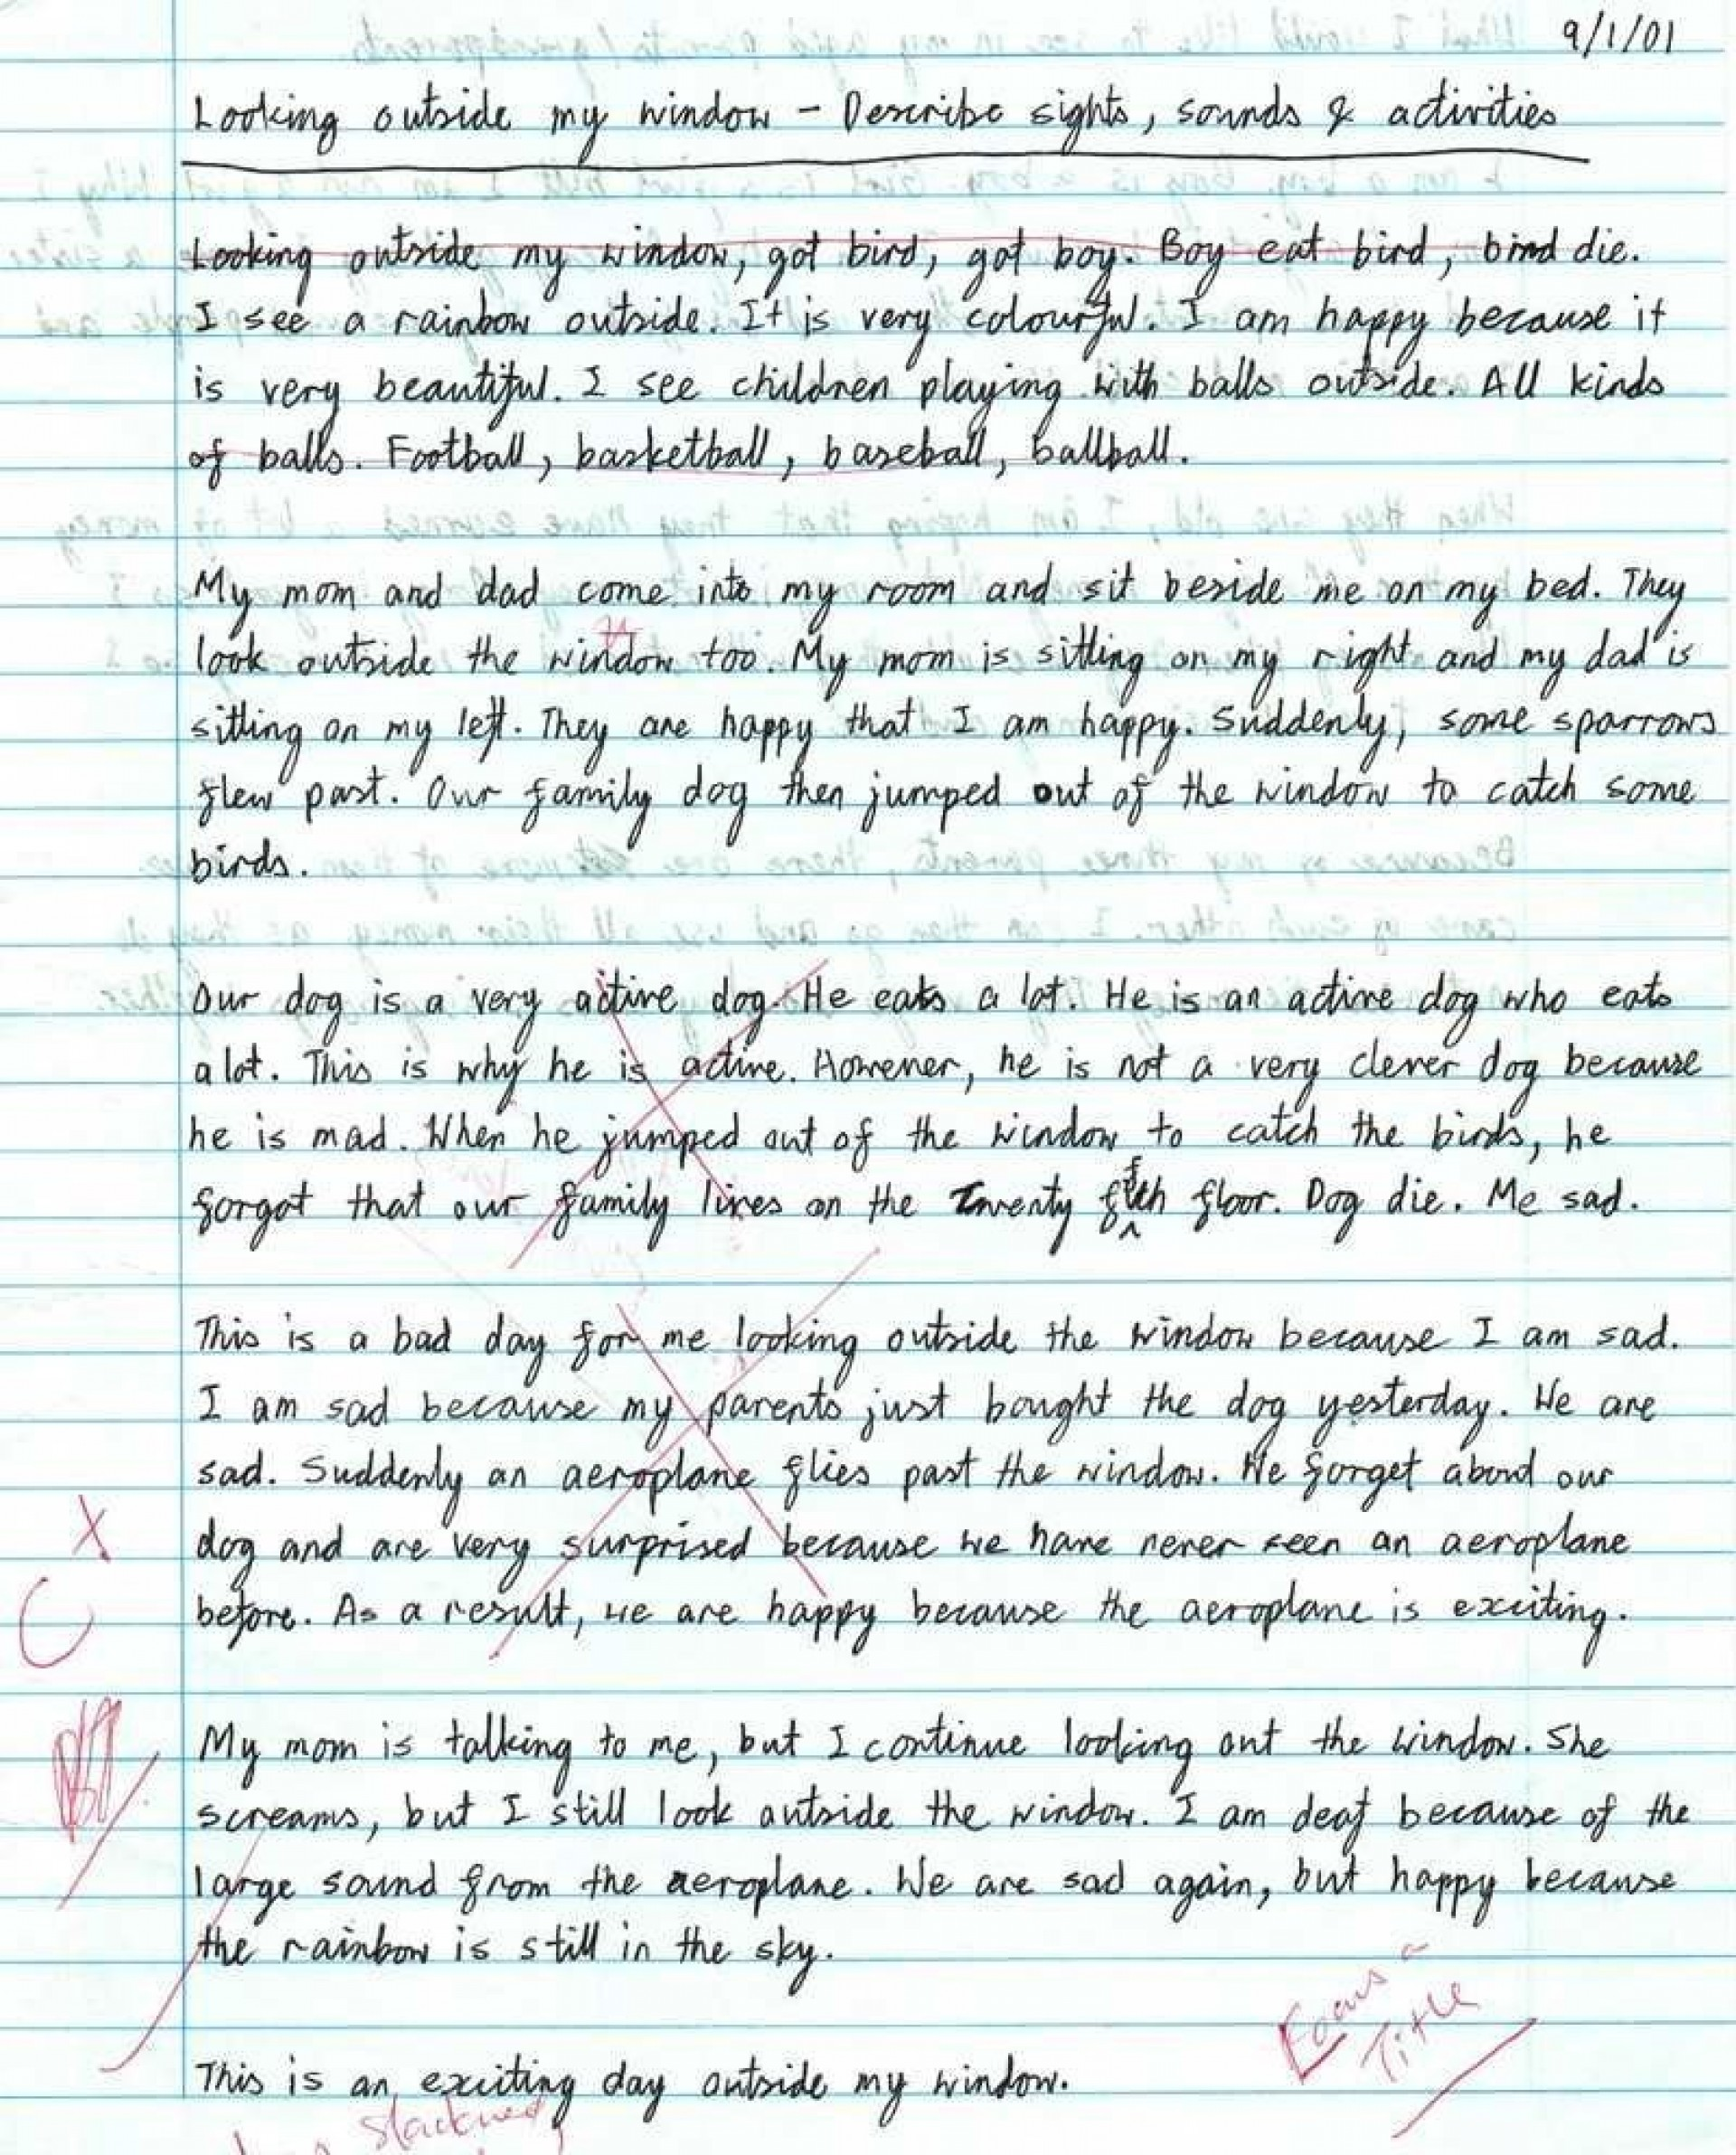 013 Essay Example Funny Topics Singular Question Paper In Hindi For Grade 7 1920